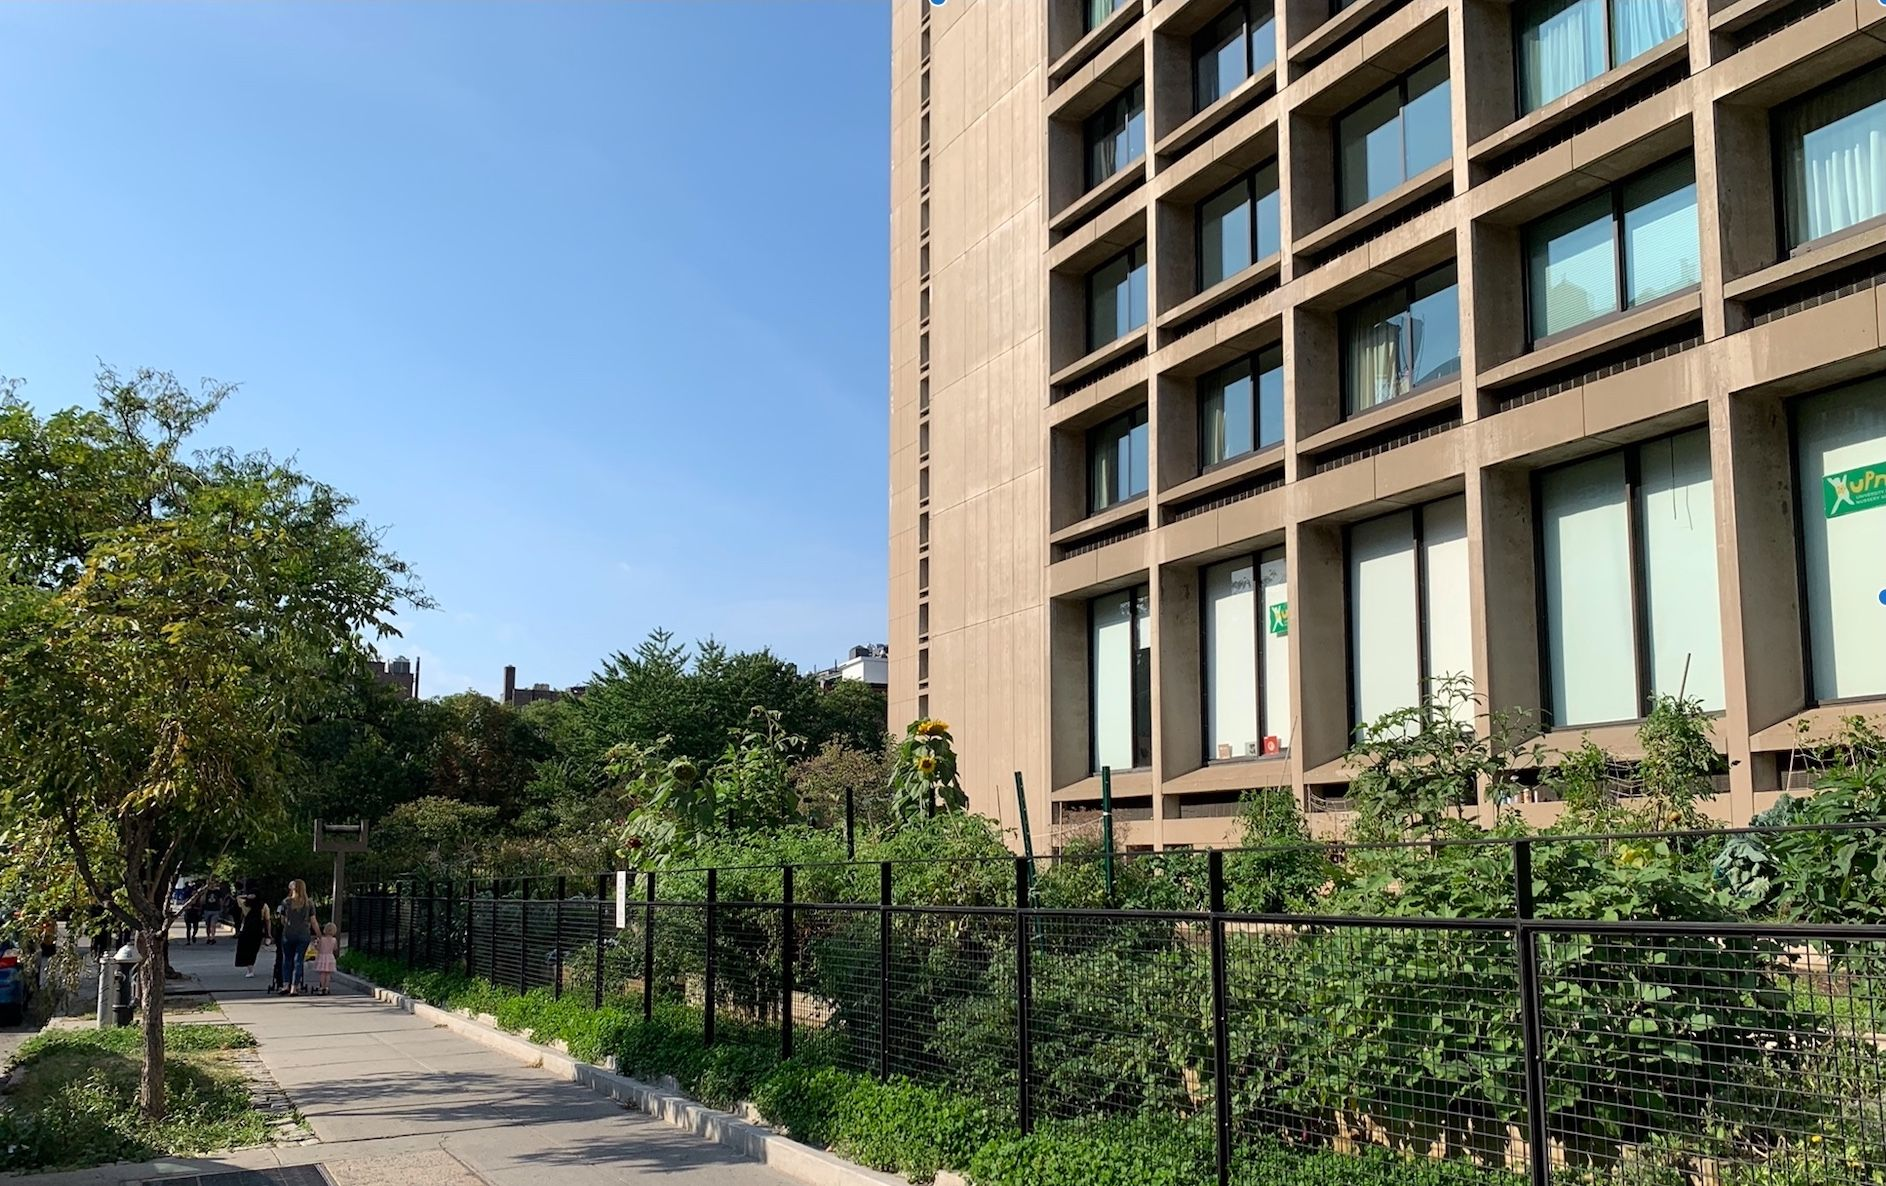 NYU - Organic Garden at Landmarked Towers by I.M.Pei